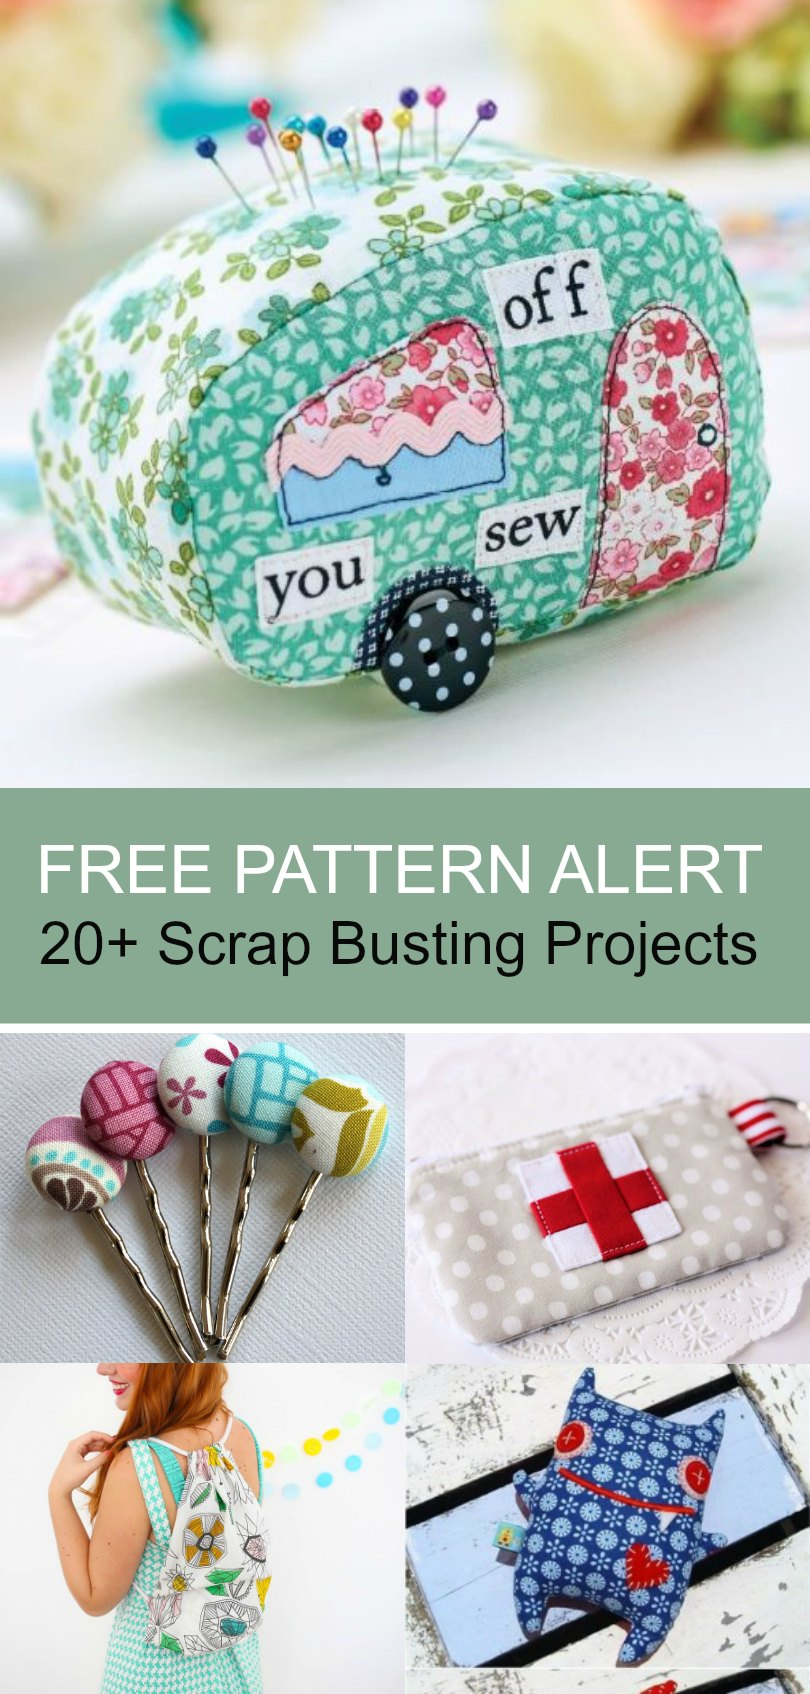 20 Free 12 Granny Square Crochet Patterns: FREE PATTERN ALERT: 20+ Scrap Busting Projects